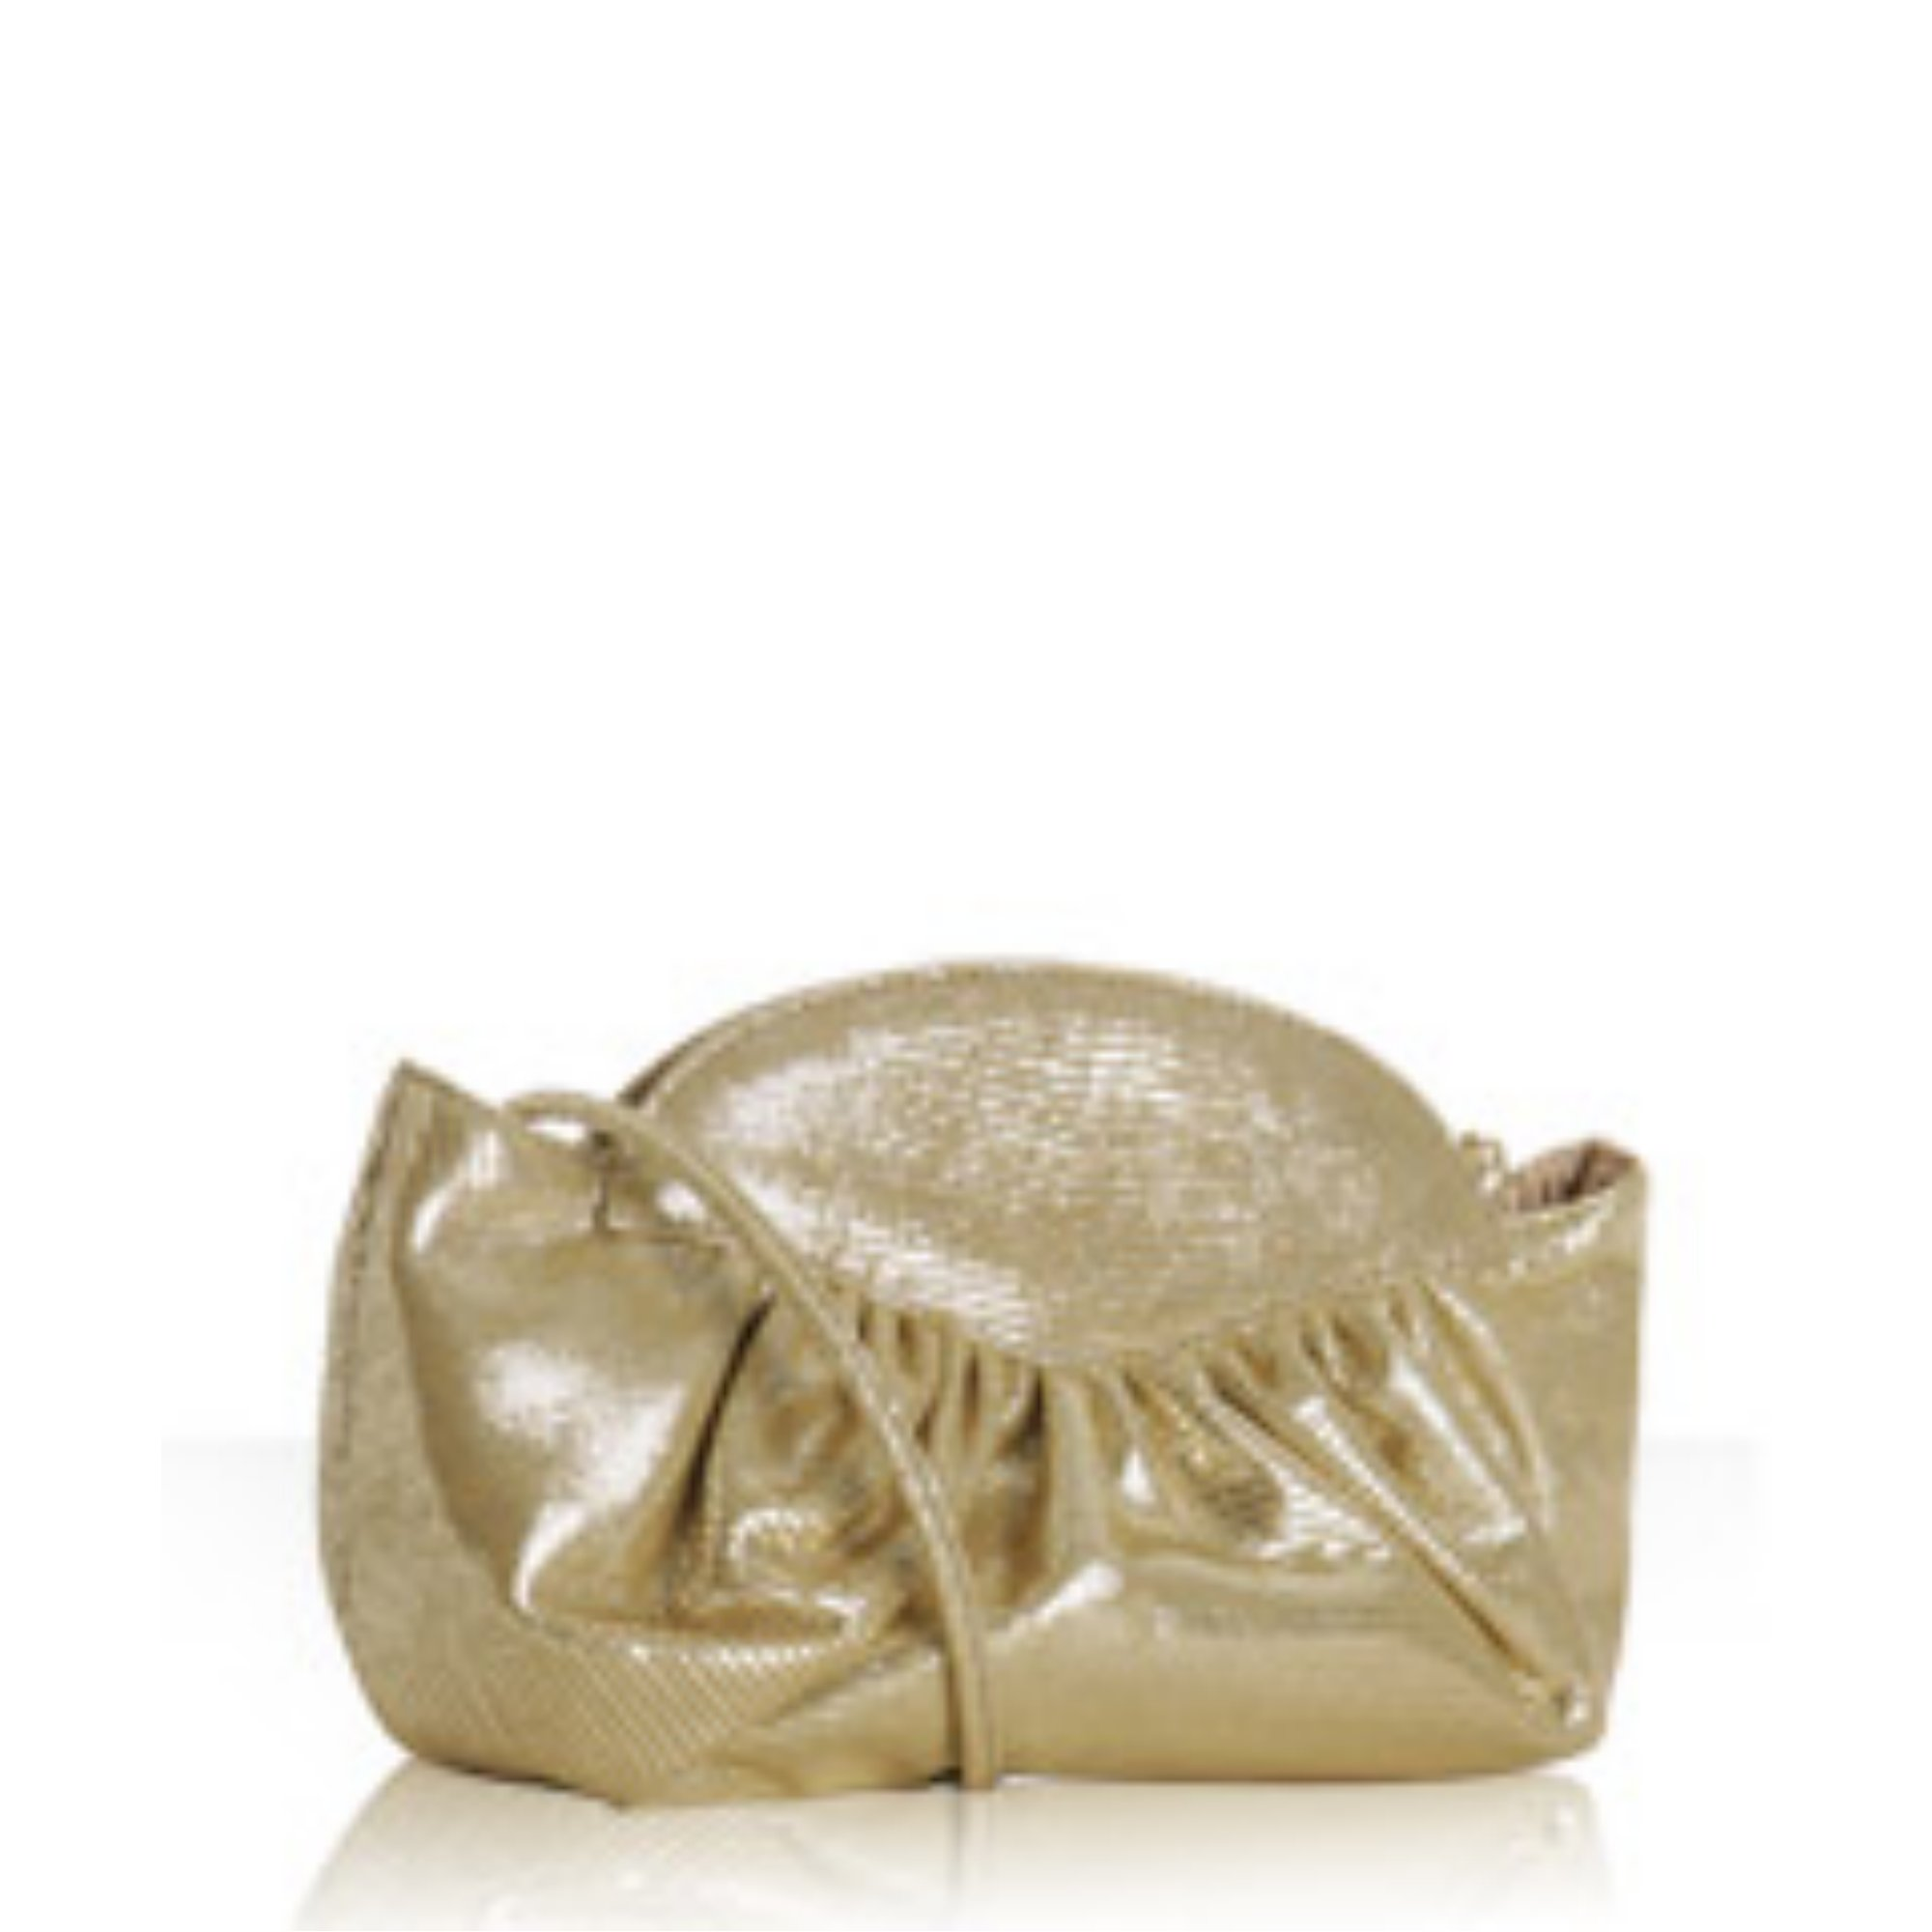 gold lizard suede 'Nite Crush' clutch